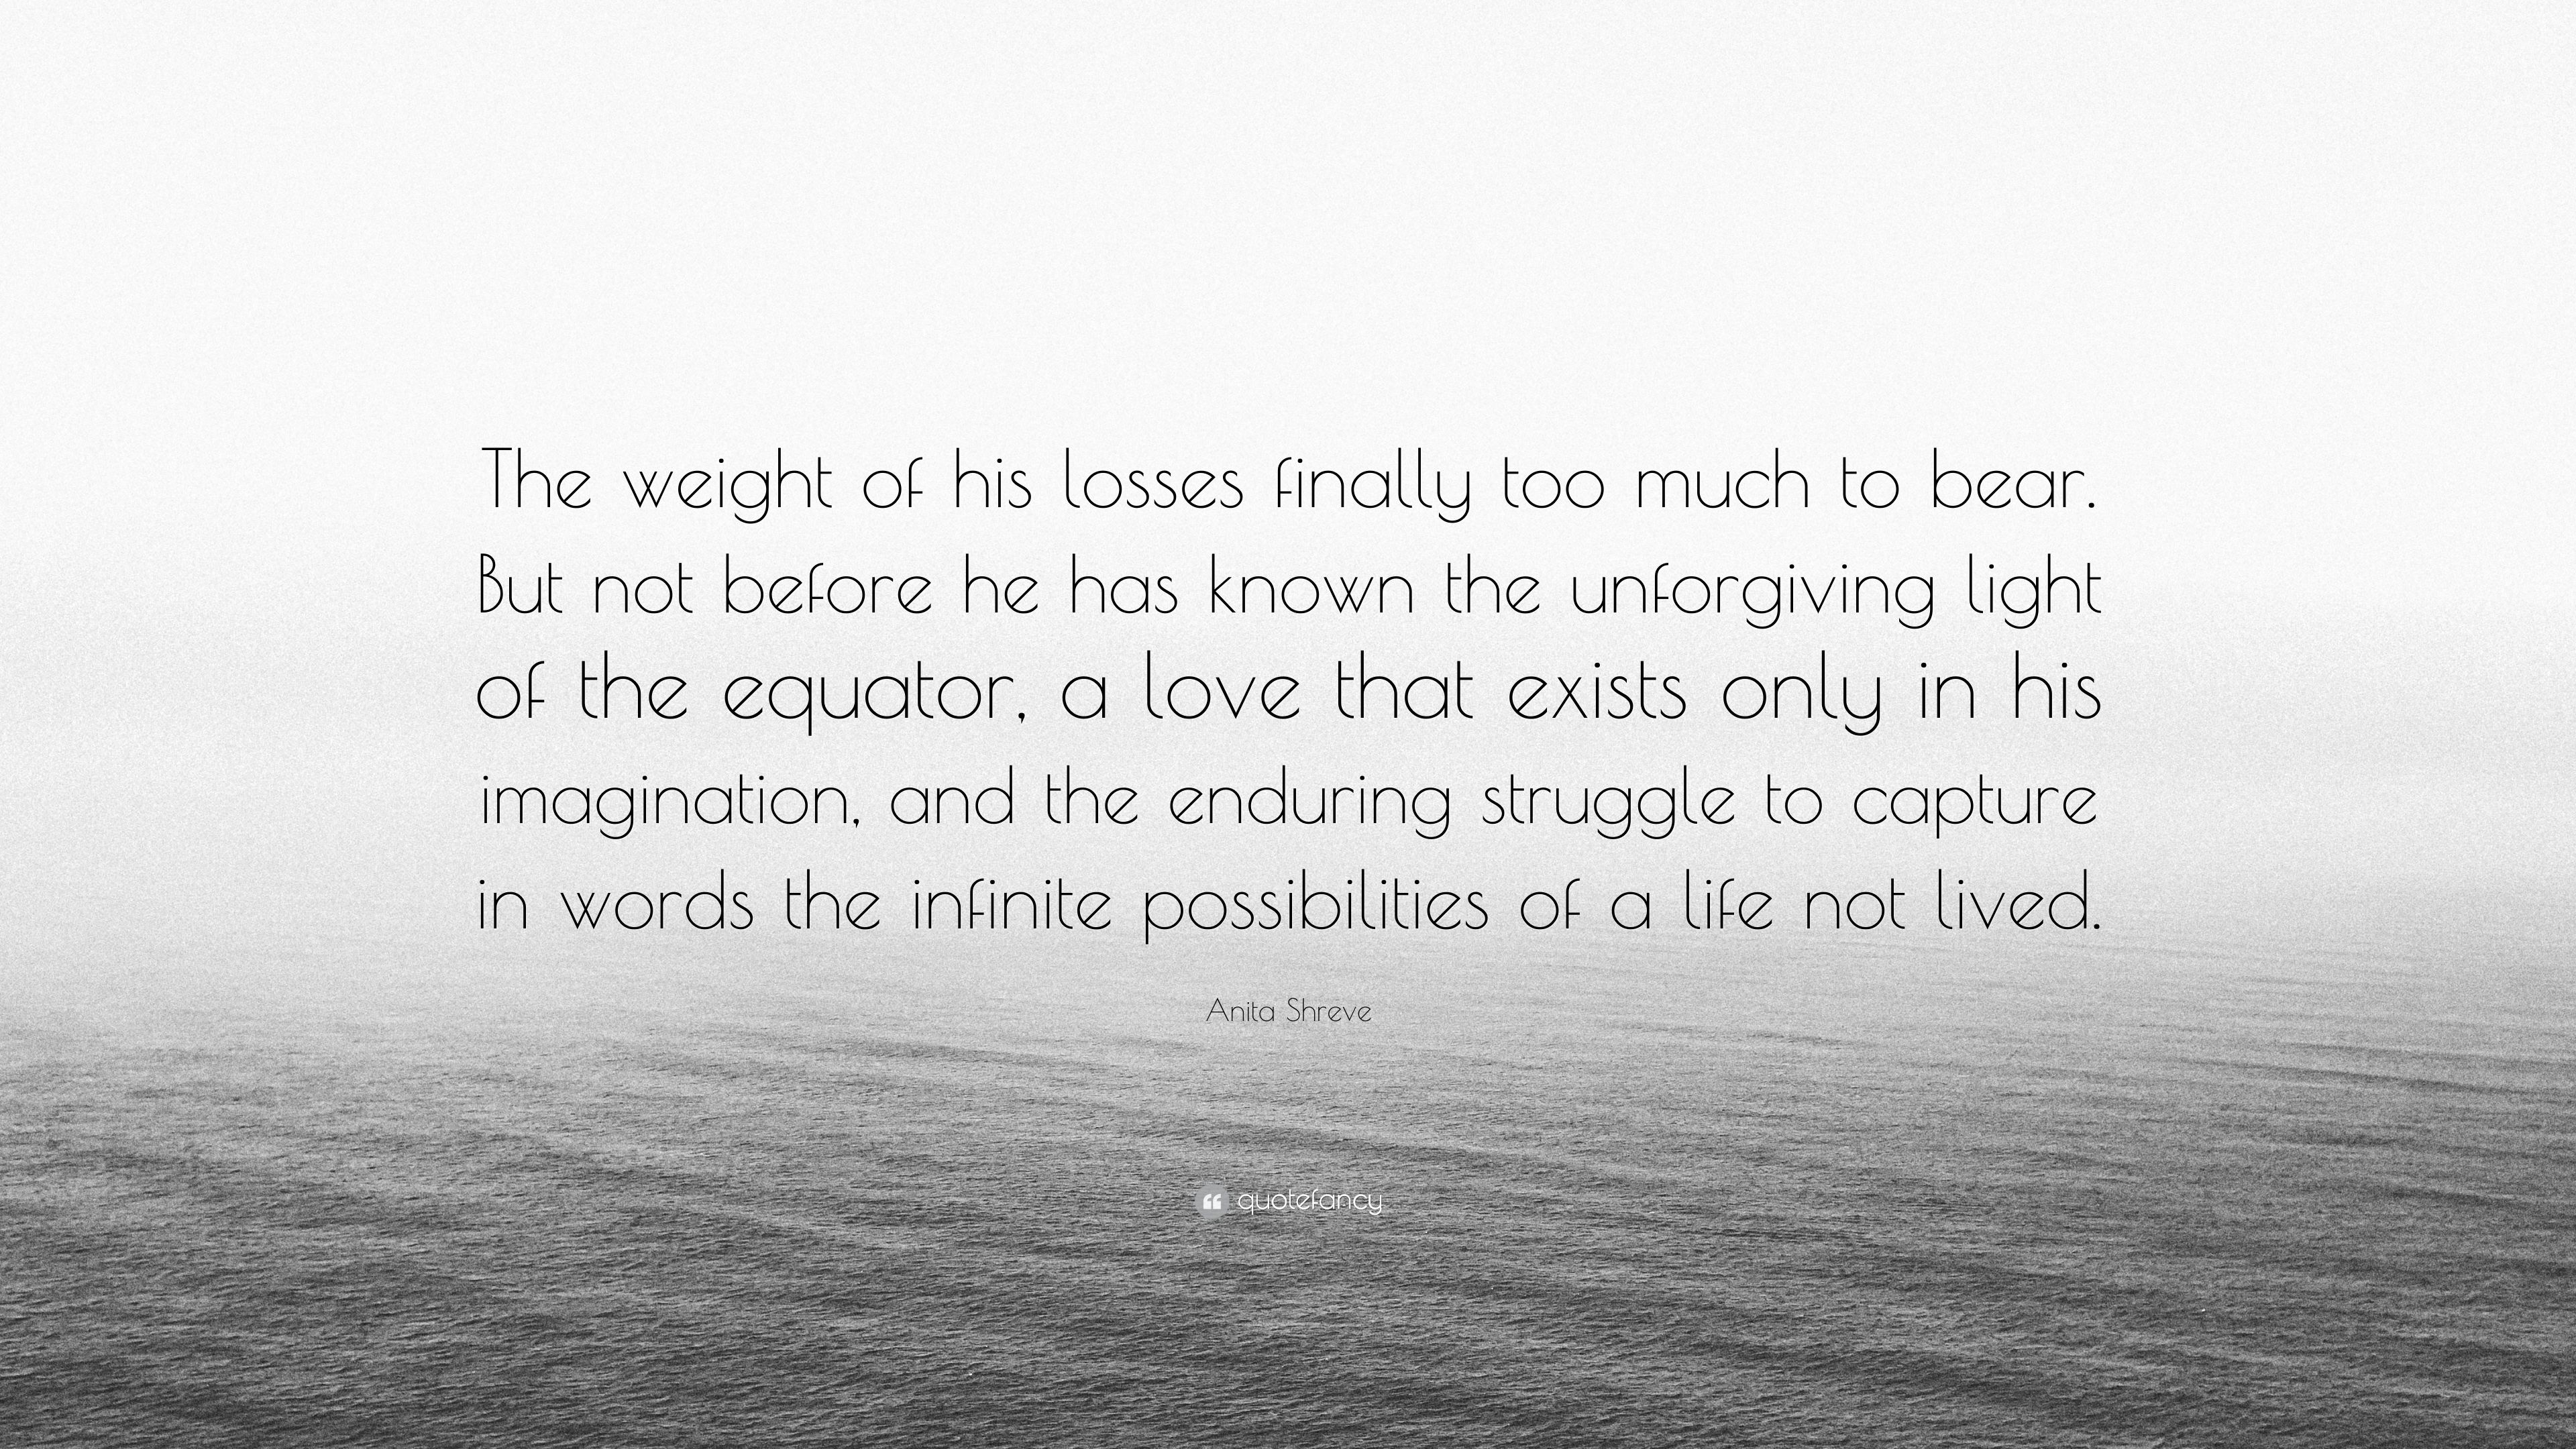 Anita Shreve Quote The Weight Of His Losses Finally Too Much To Bear But Not Before He Has Known The Unforgiving Light Of The Equator A L 7 Wallpapers Quotefancy